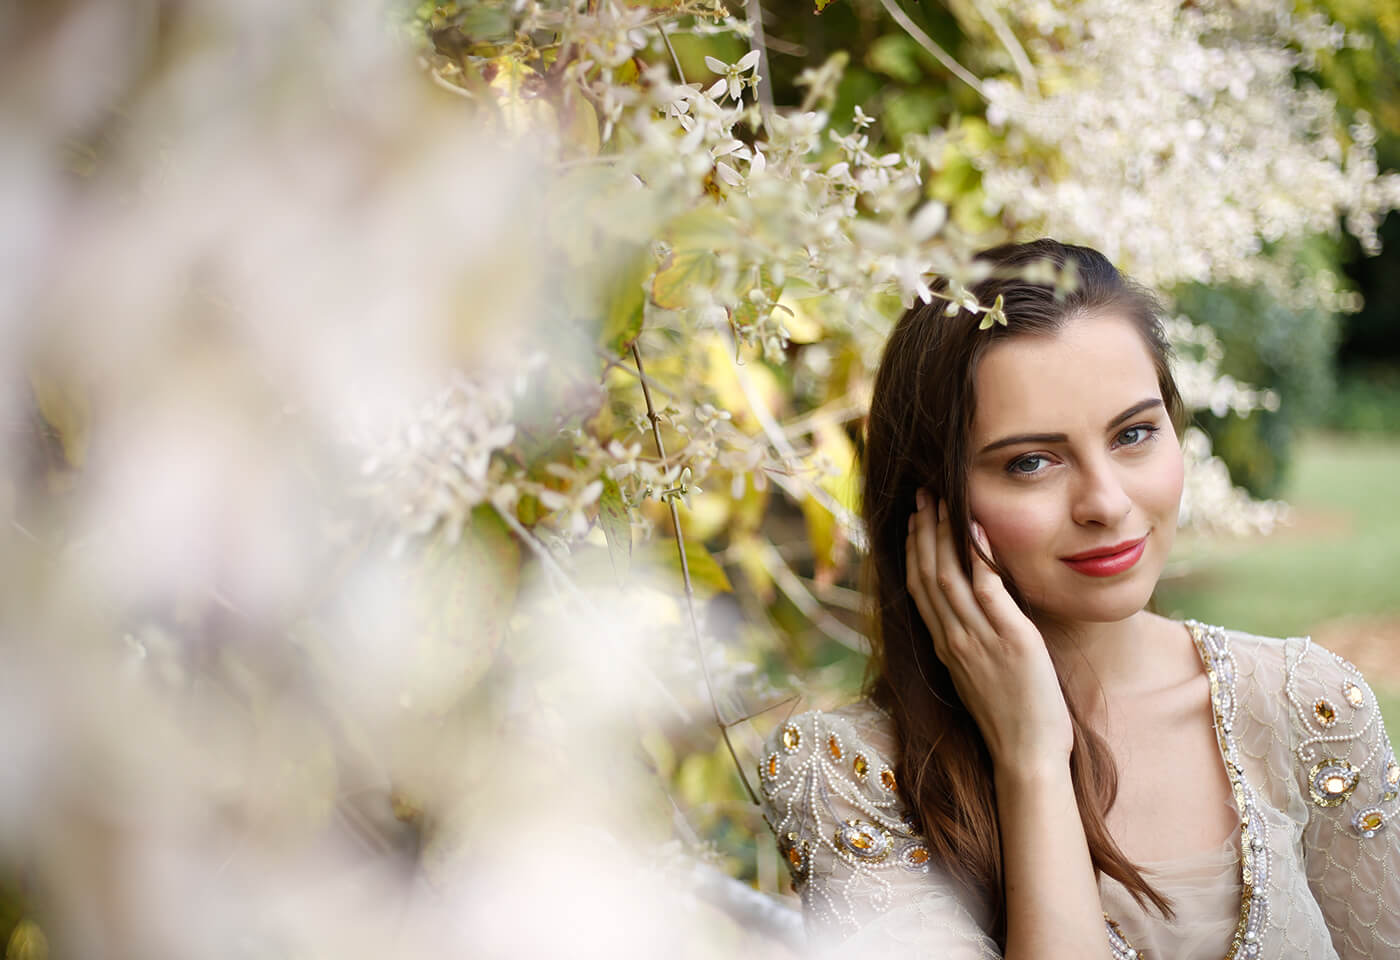 Young brunette lady among flowers taken using a Canon DSLR camera and prime lens